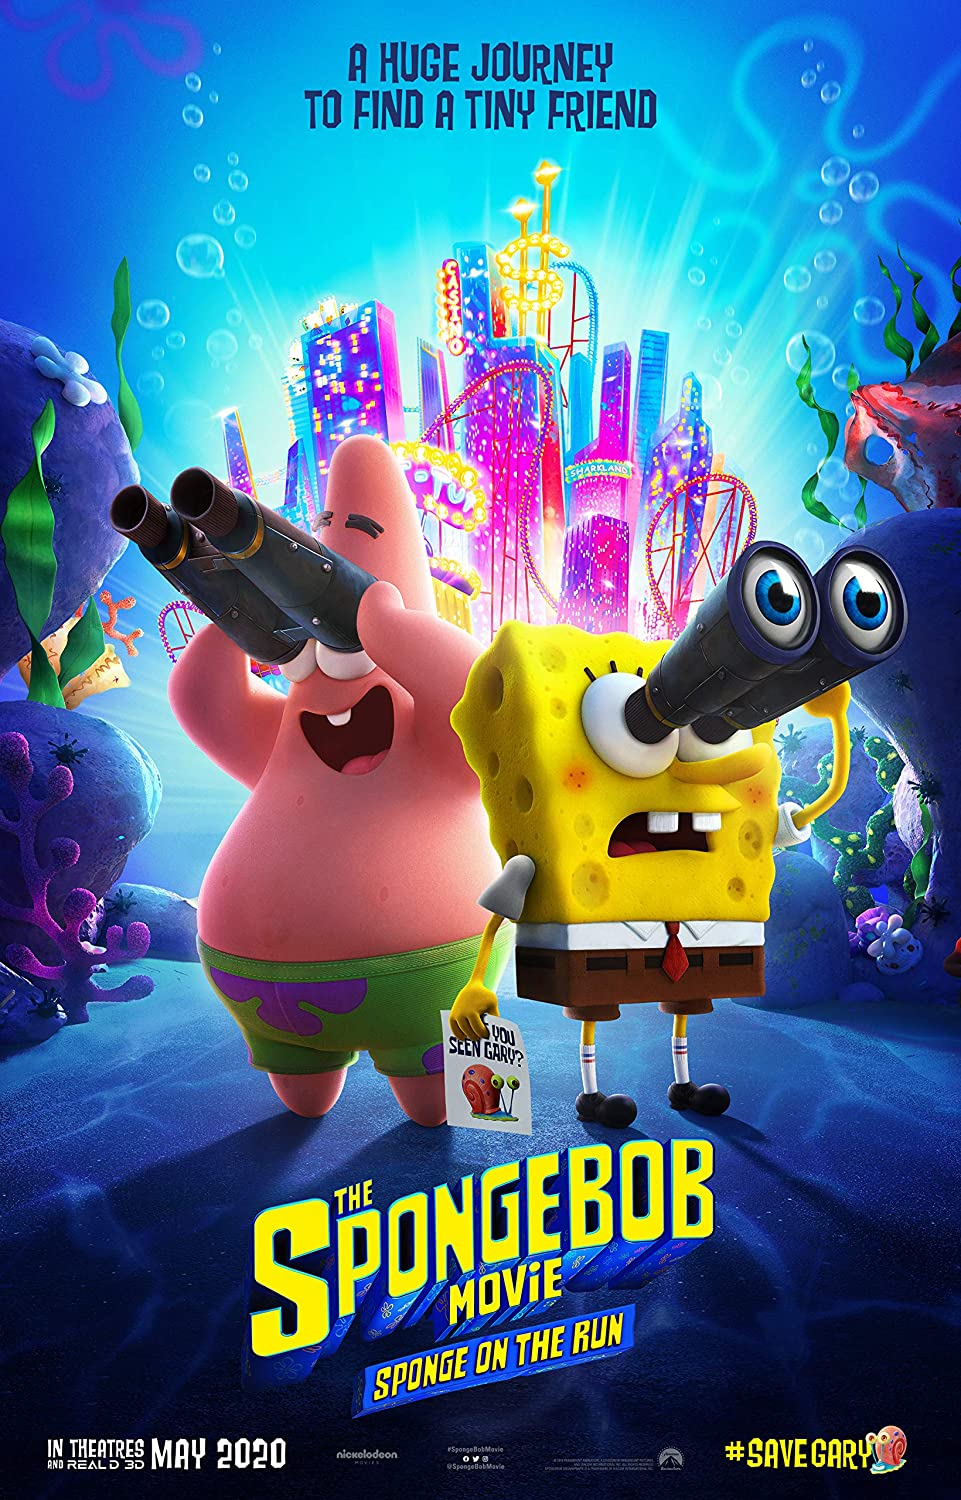 Amazon.com: Movie Poster The Spongebob Movie: Sponge On The Run (2020) Flyer 13 in x 19 in Borderless + Free 1 Tile Magnet: Posters & Prints